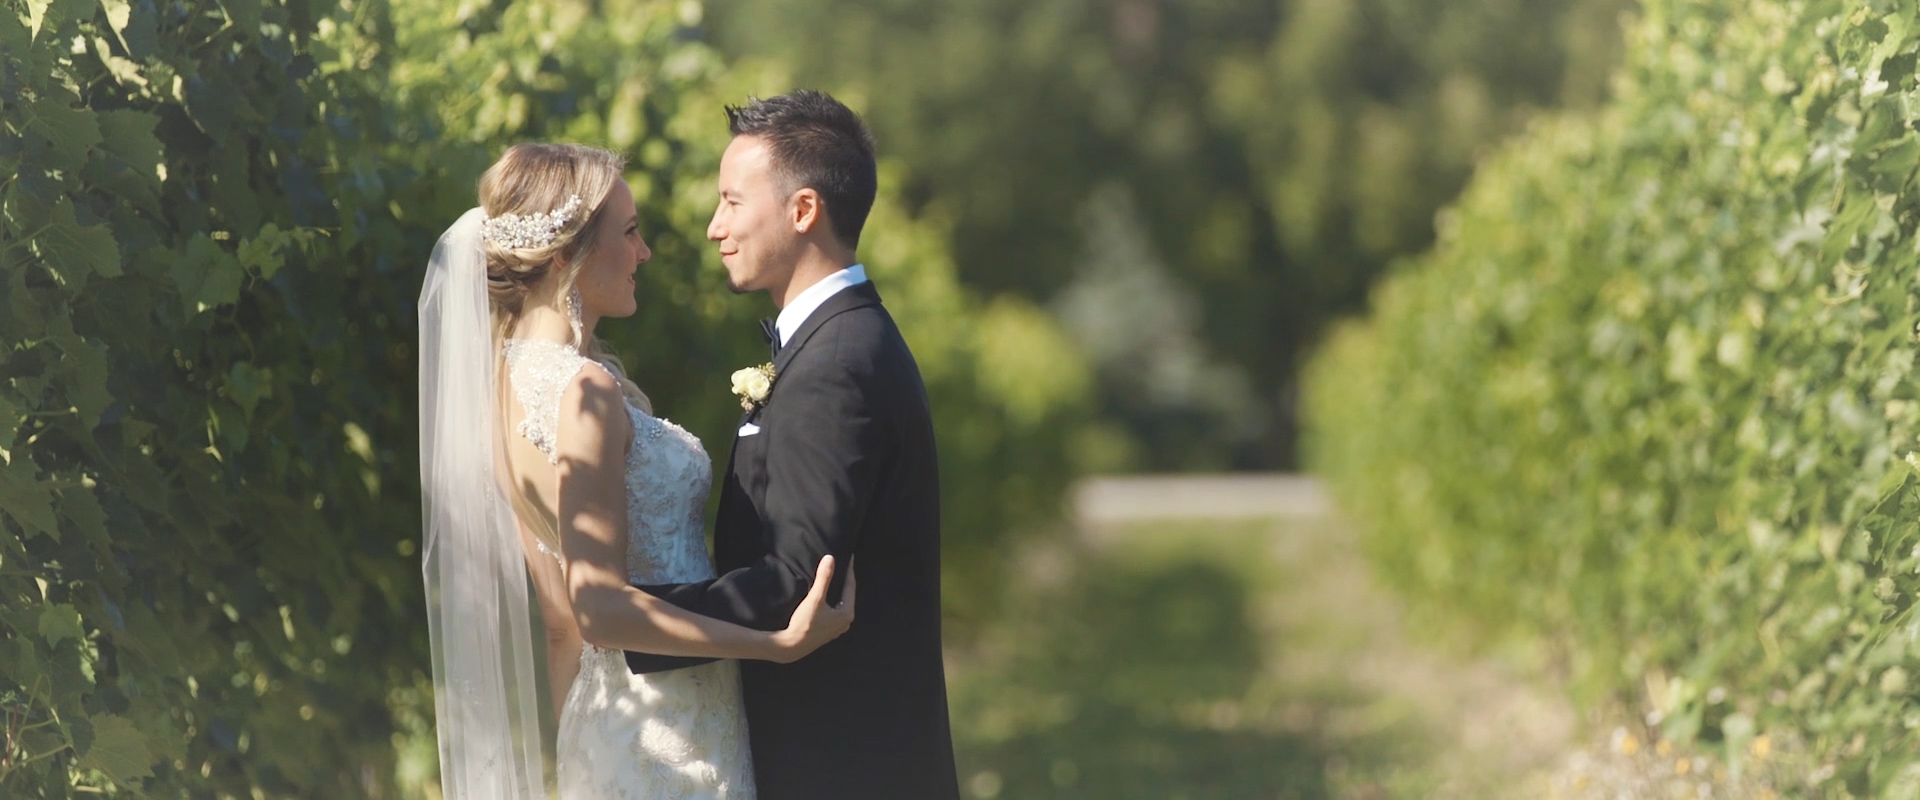 An image of a wedding couple posing for a photo on their wedding day at a vineyard in collingwood; taken from a Toronto Wedding Video